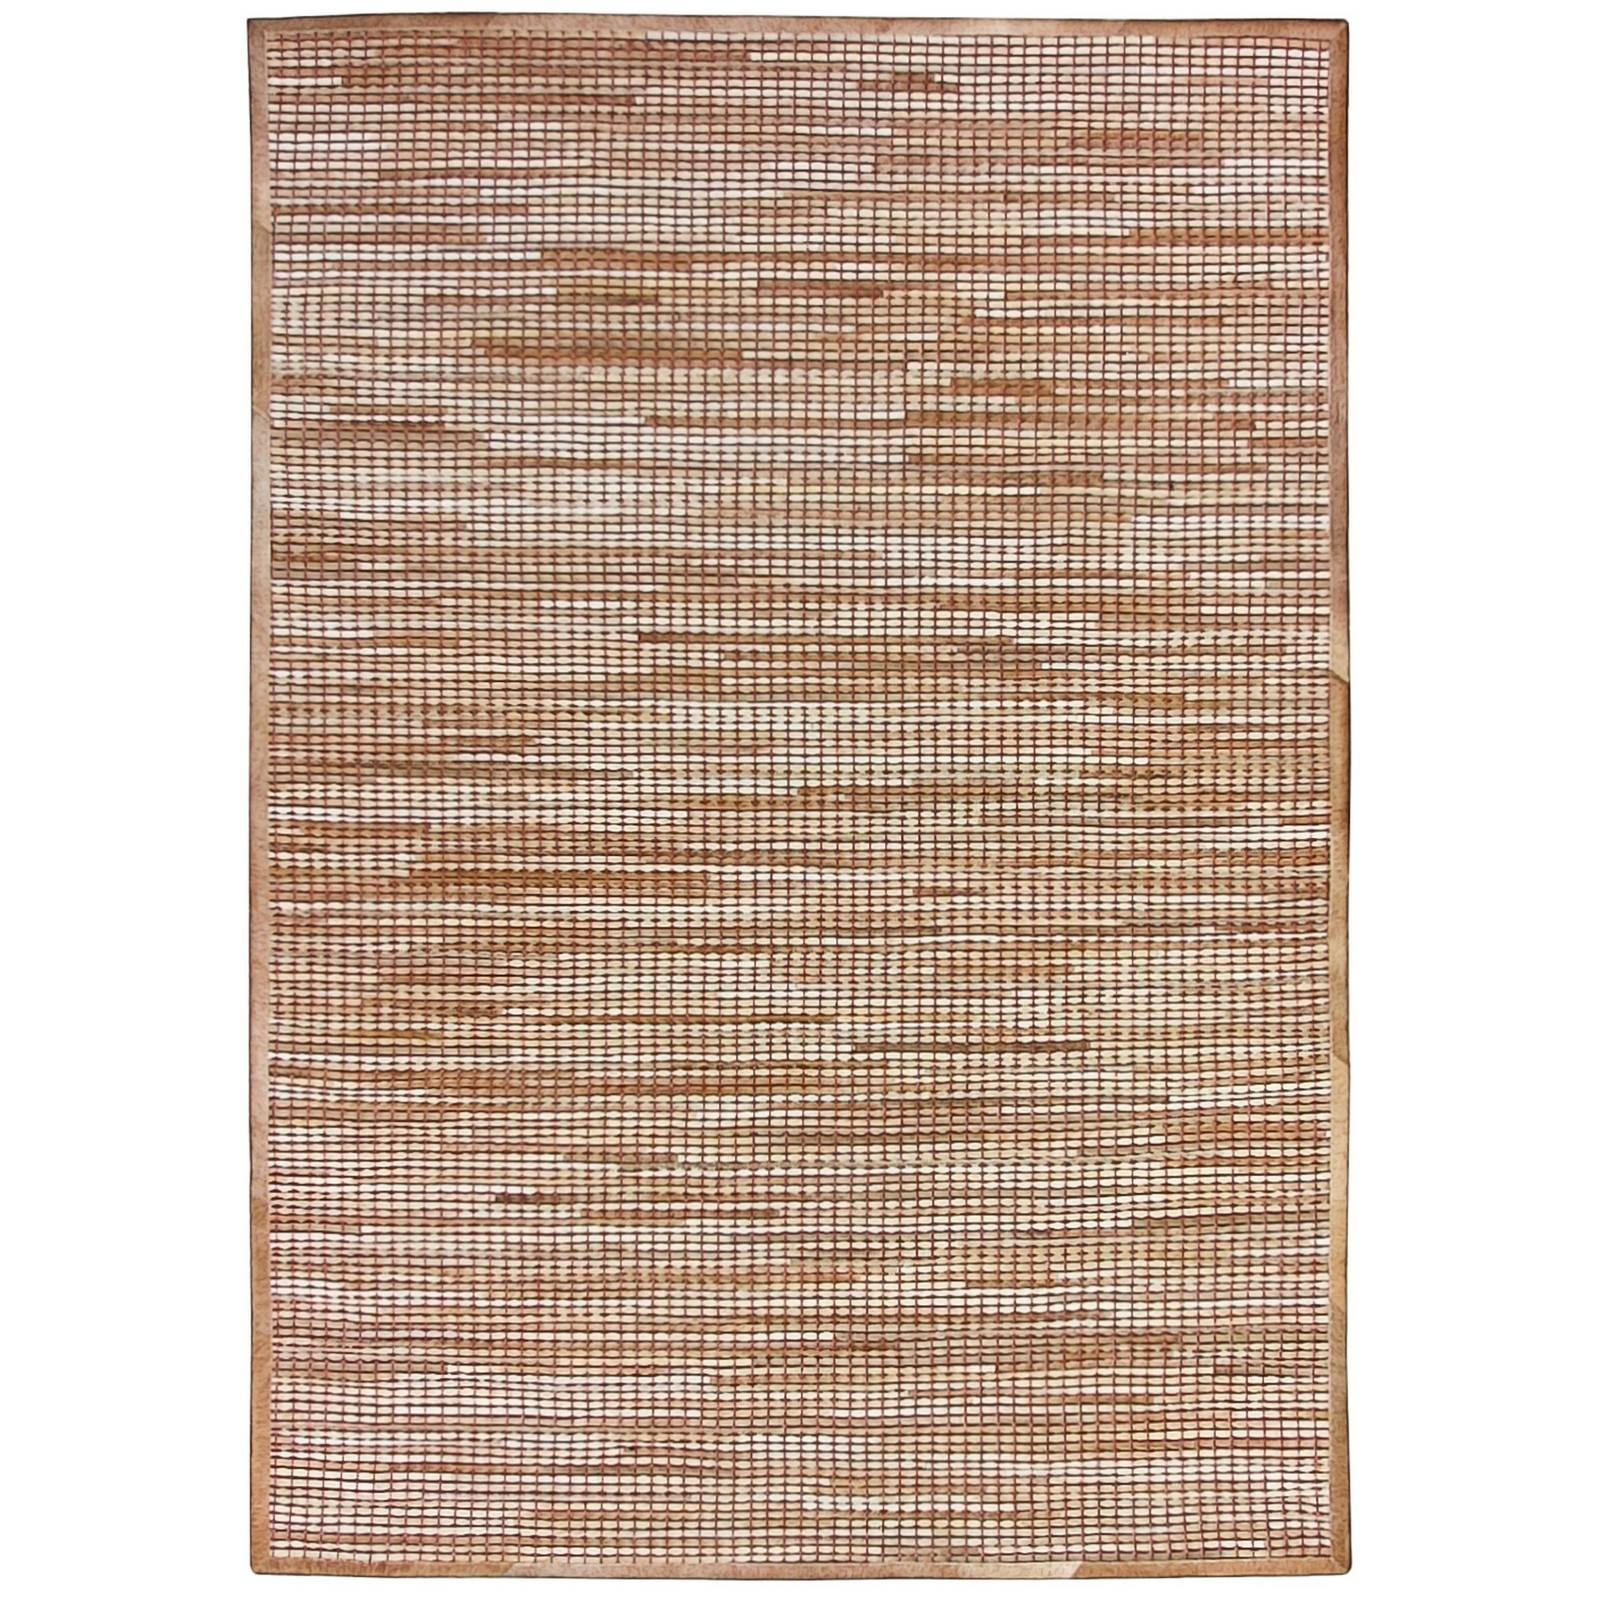 Chase Handwoven Hide & Leather Rug, 300x400cm, Natural